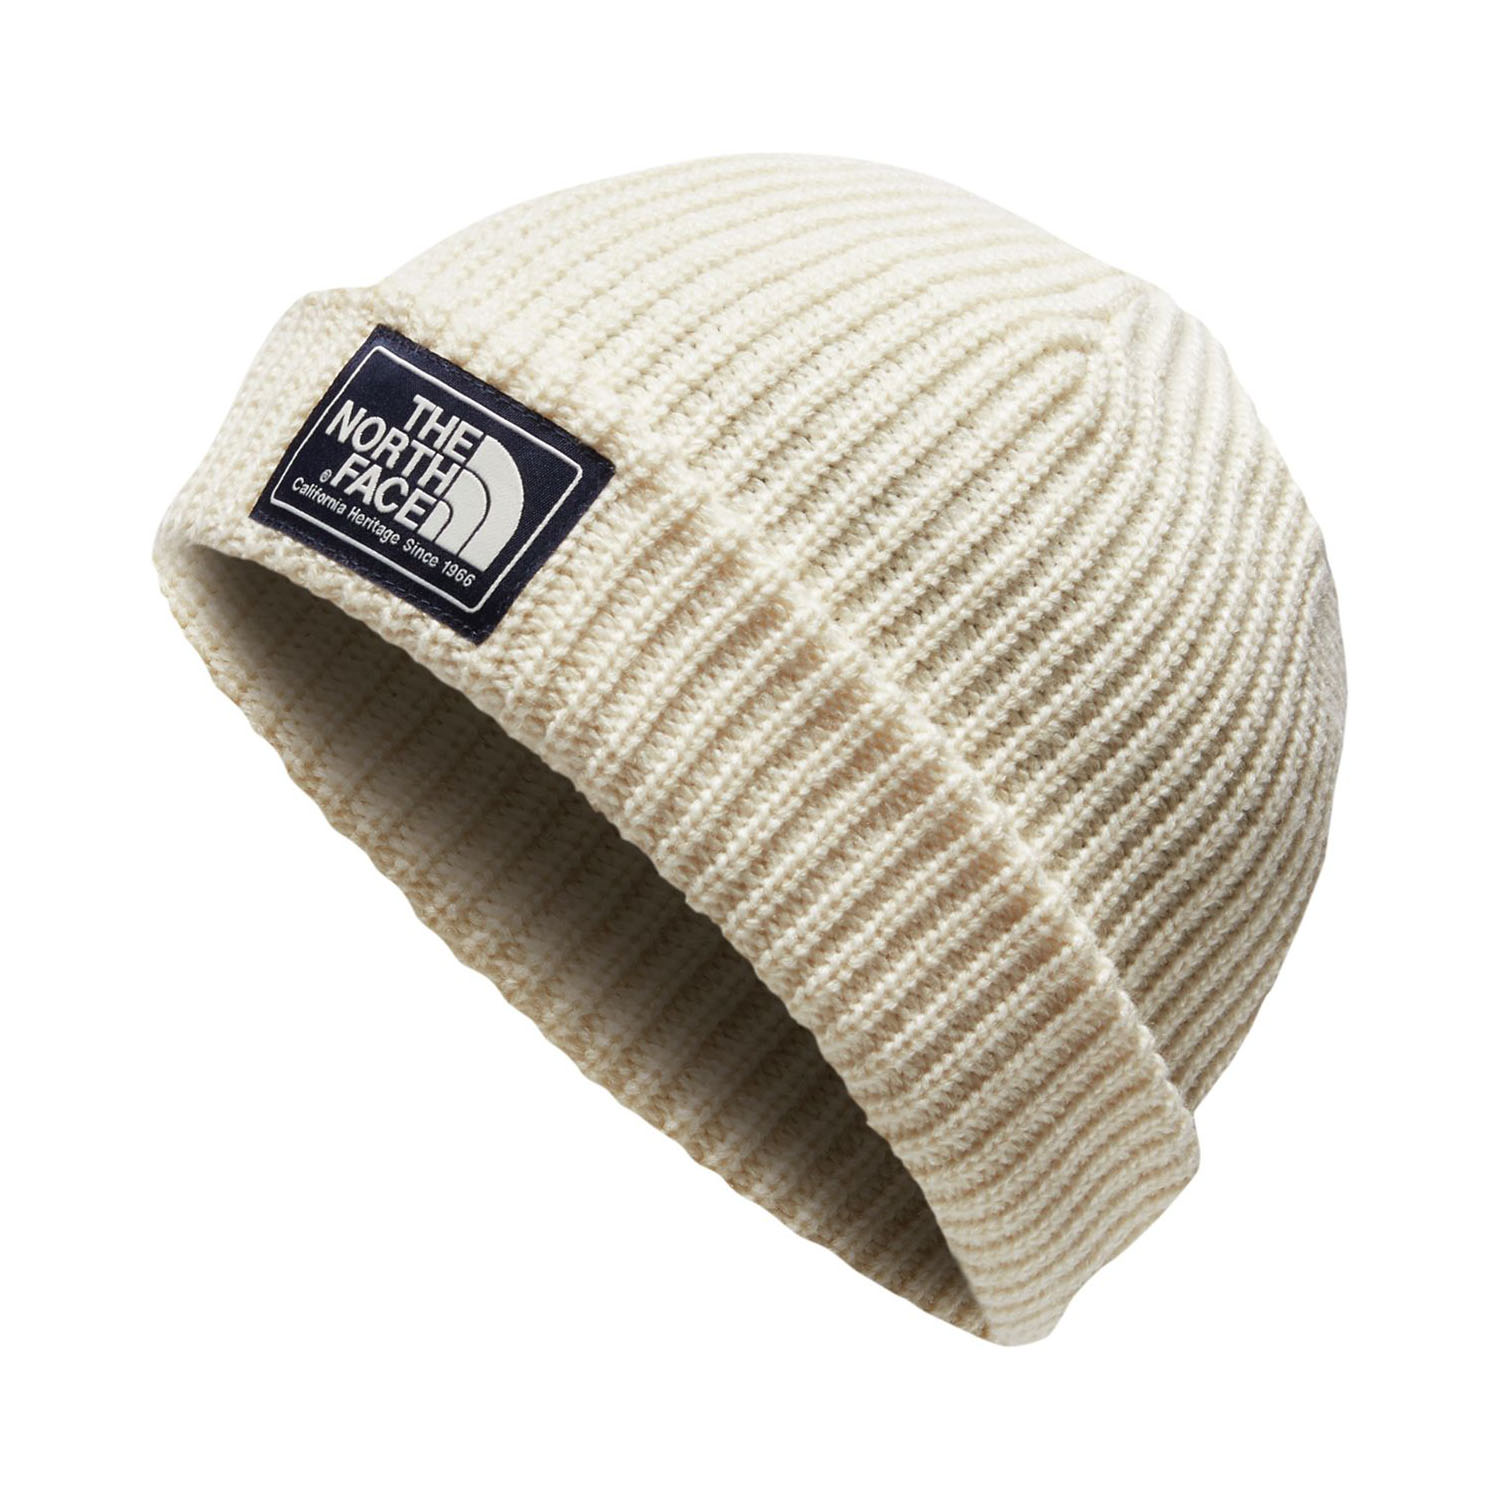 30bf1ccdb Details about THE NORTH FACE Salty Dog Beanie | Vintage White / Peyote  Beige (NF0A3FJW)